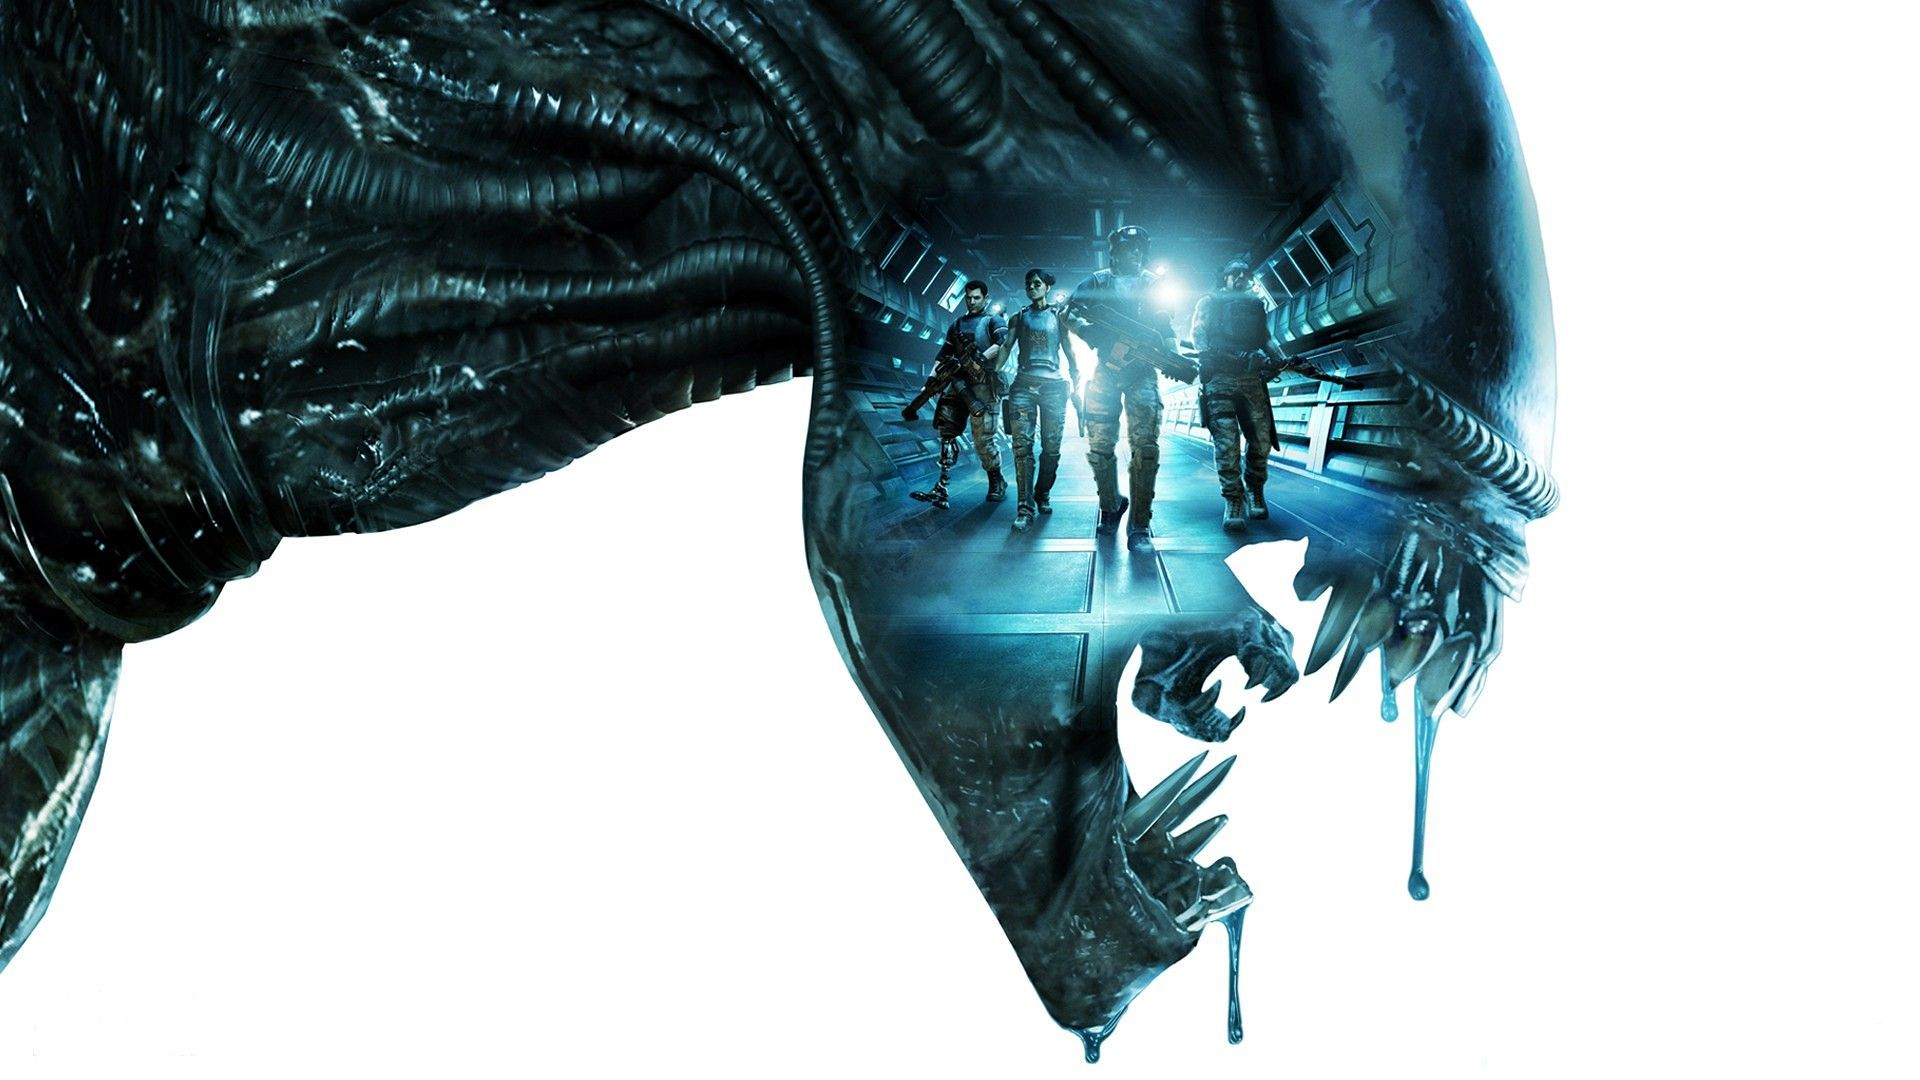 new alien multiplayer free roaming vr experience in development by